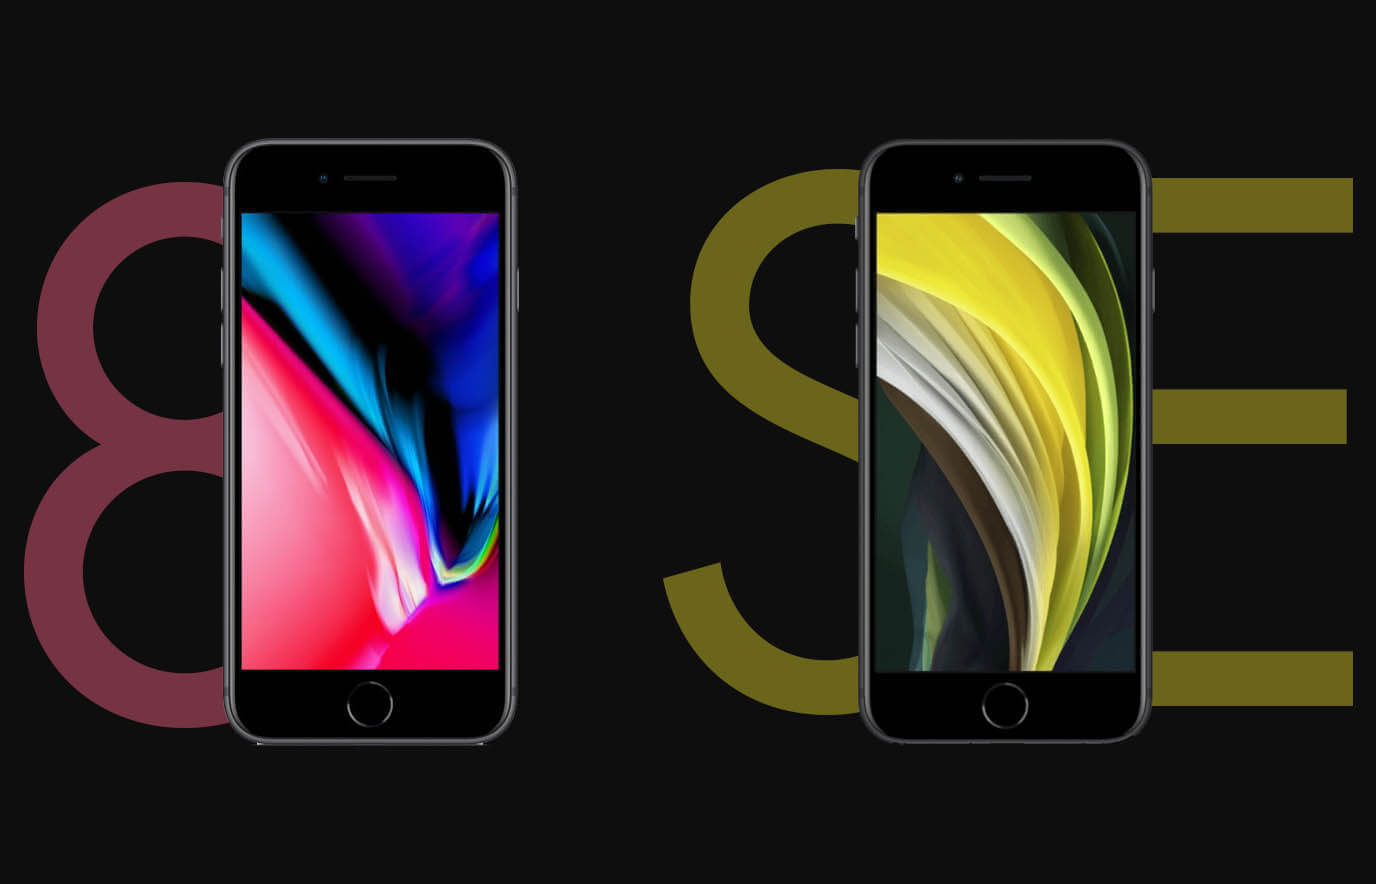 iPhone 8 vs iPhone SE 2020: overeenkomsten en verschillen